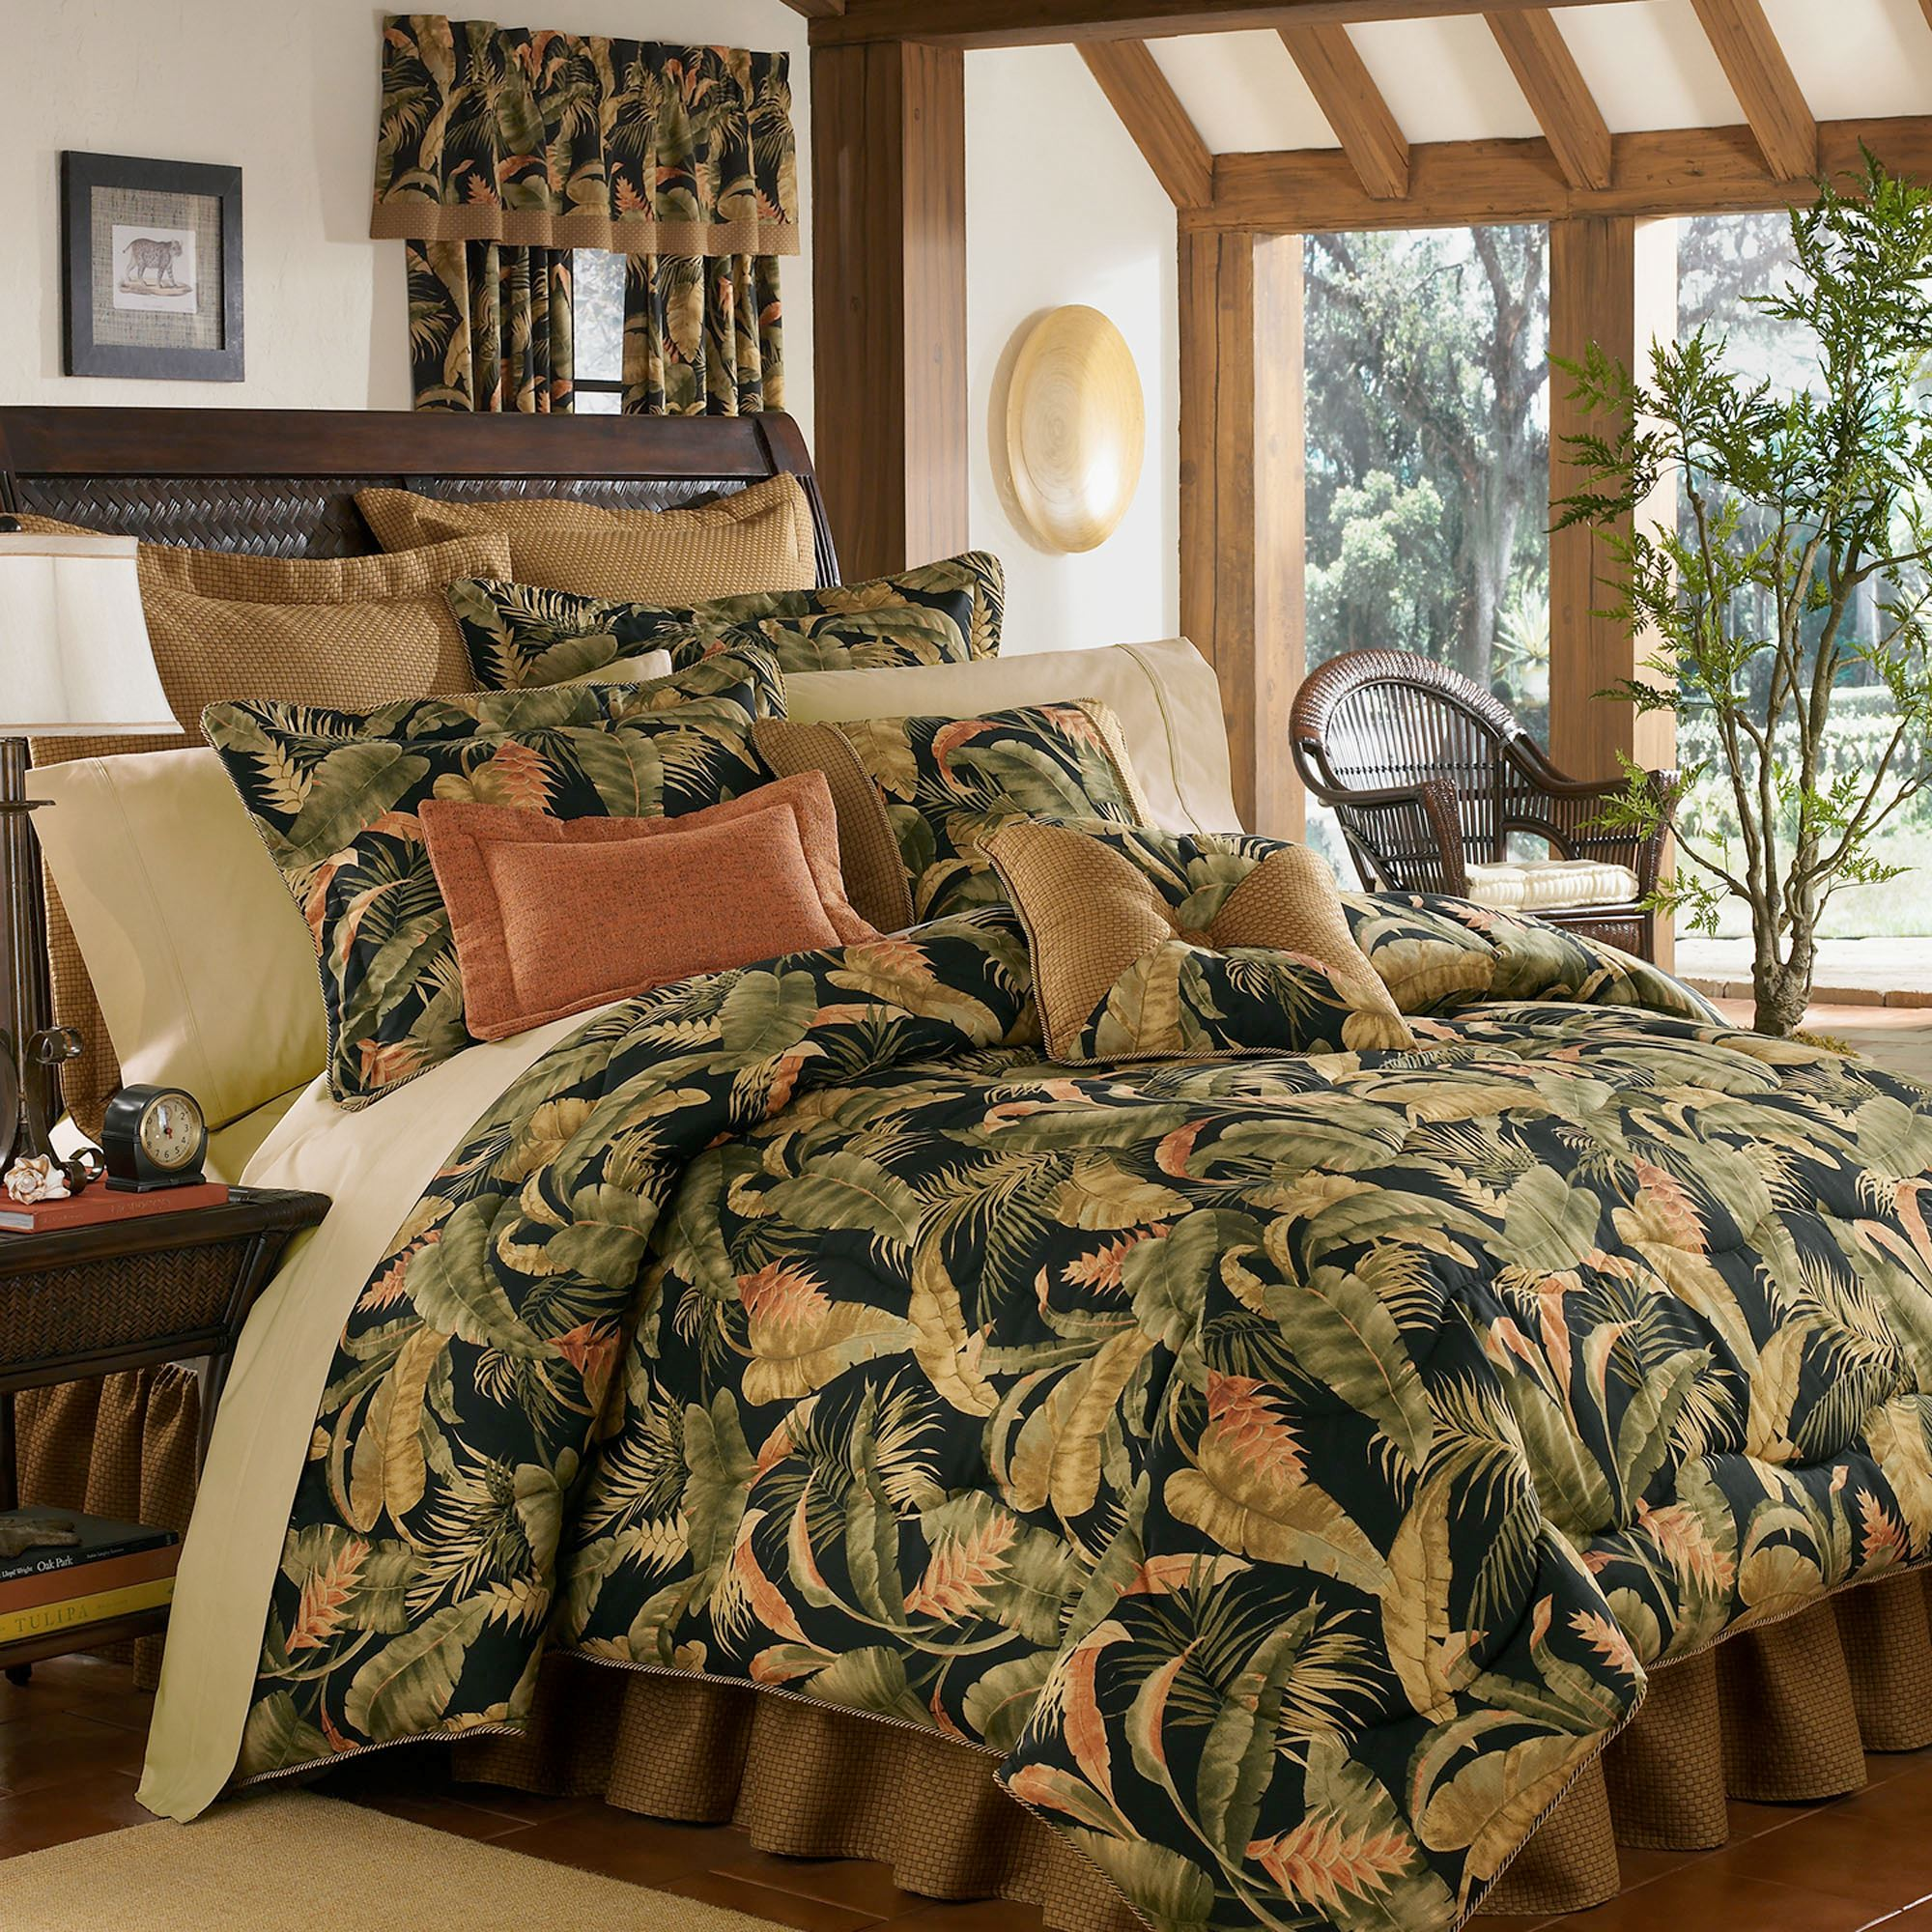 La Selva Black Tropical Comforter Bedding